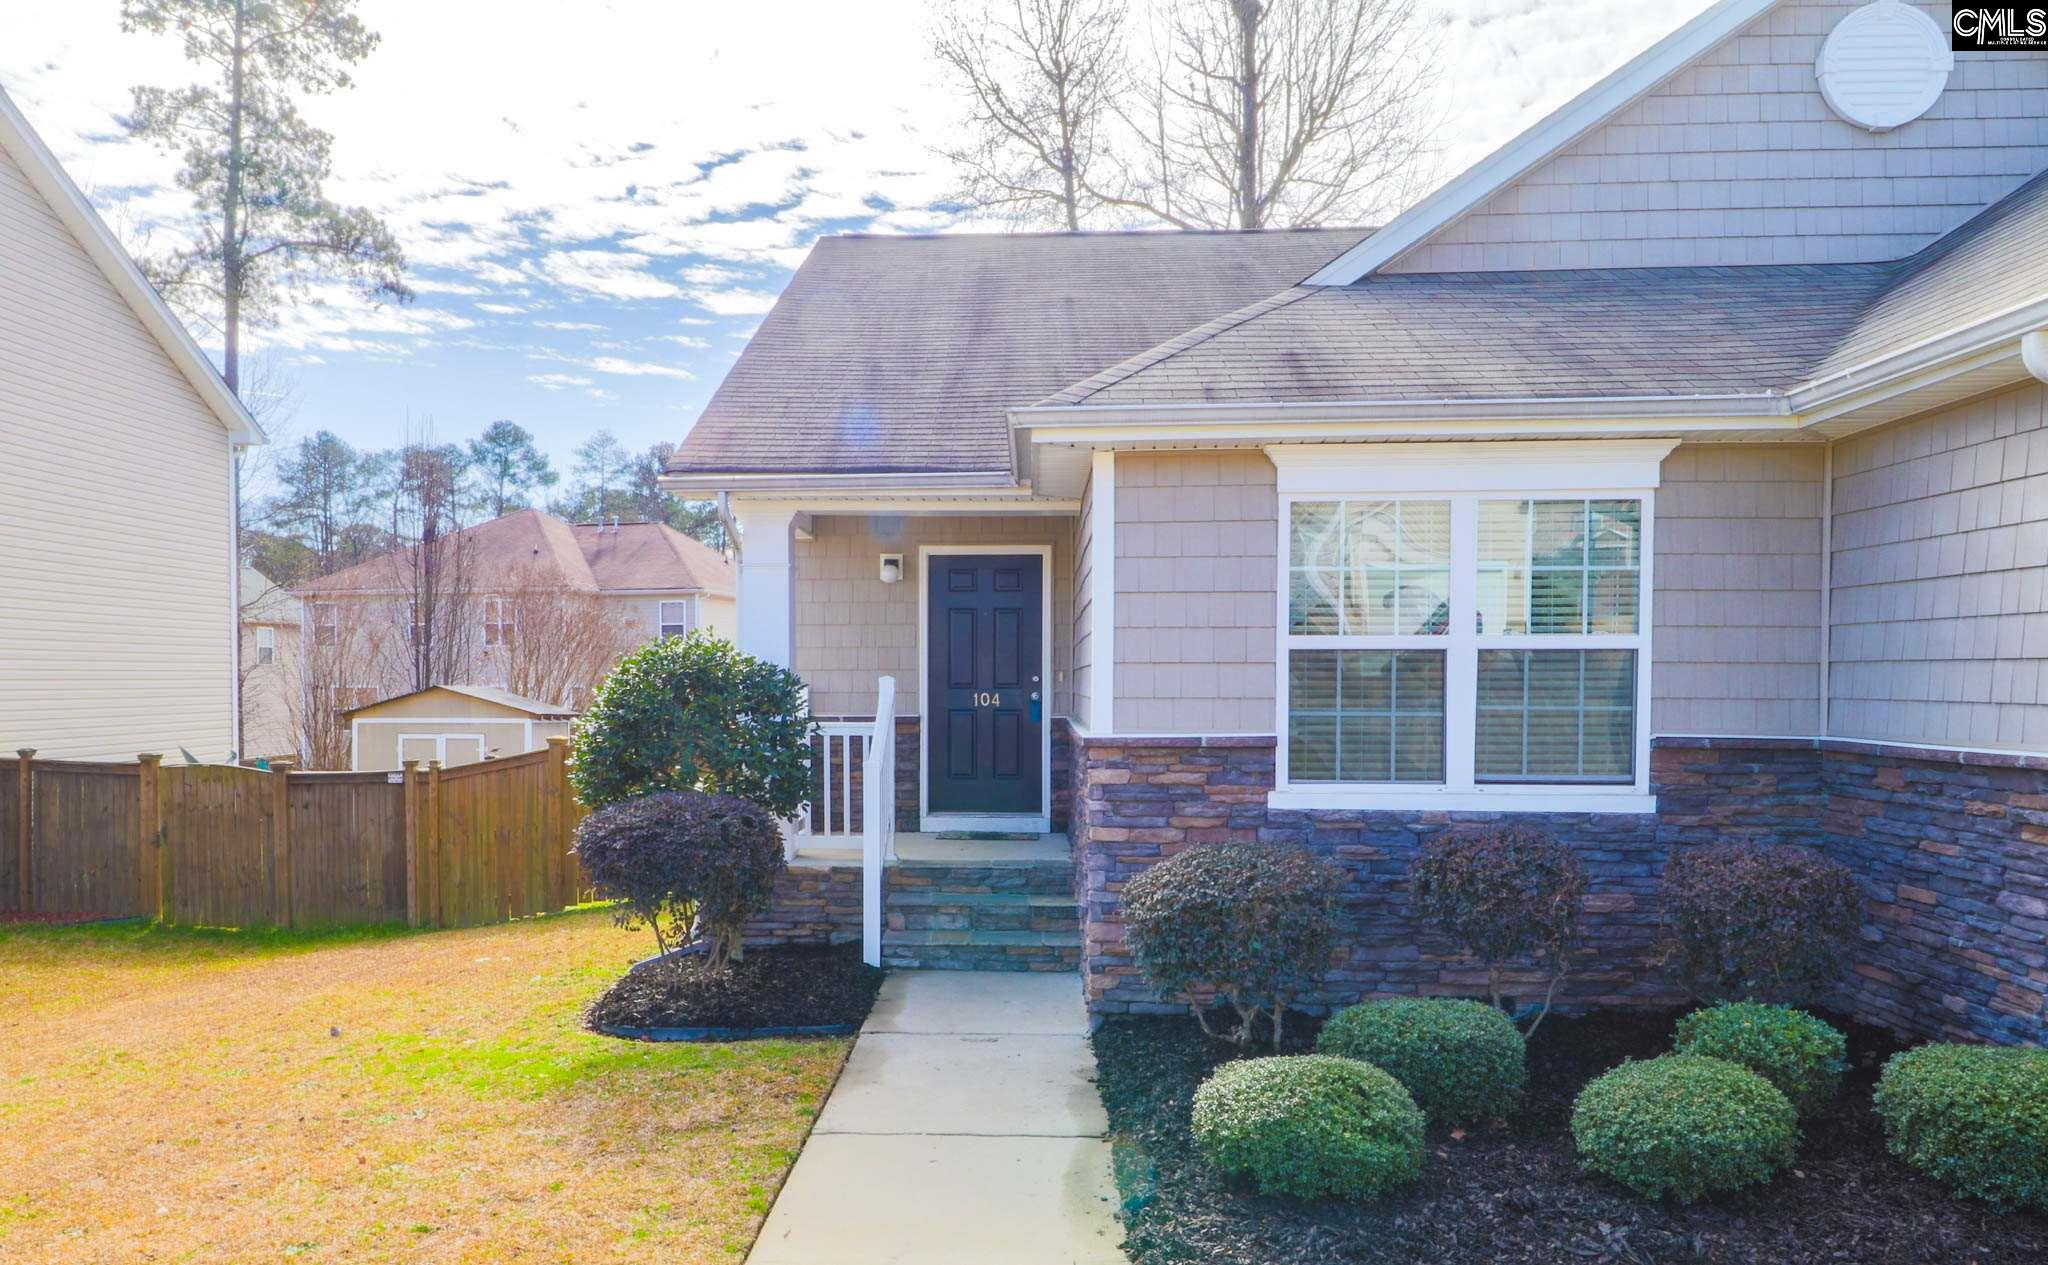 104 Settlers Bend Ct Lexington, SC 29072